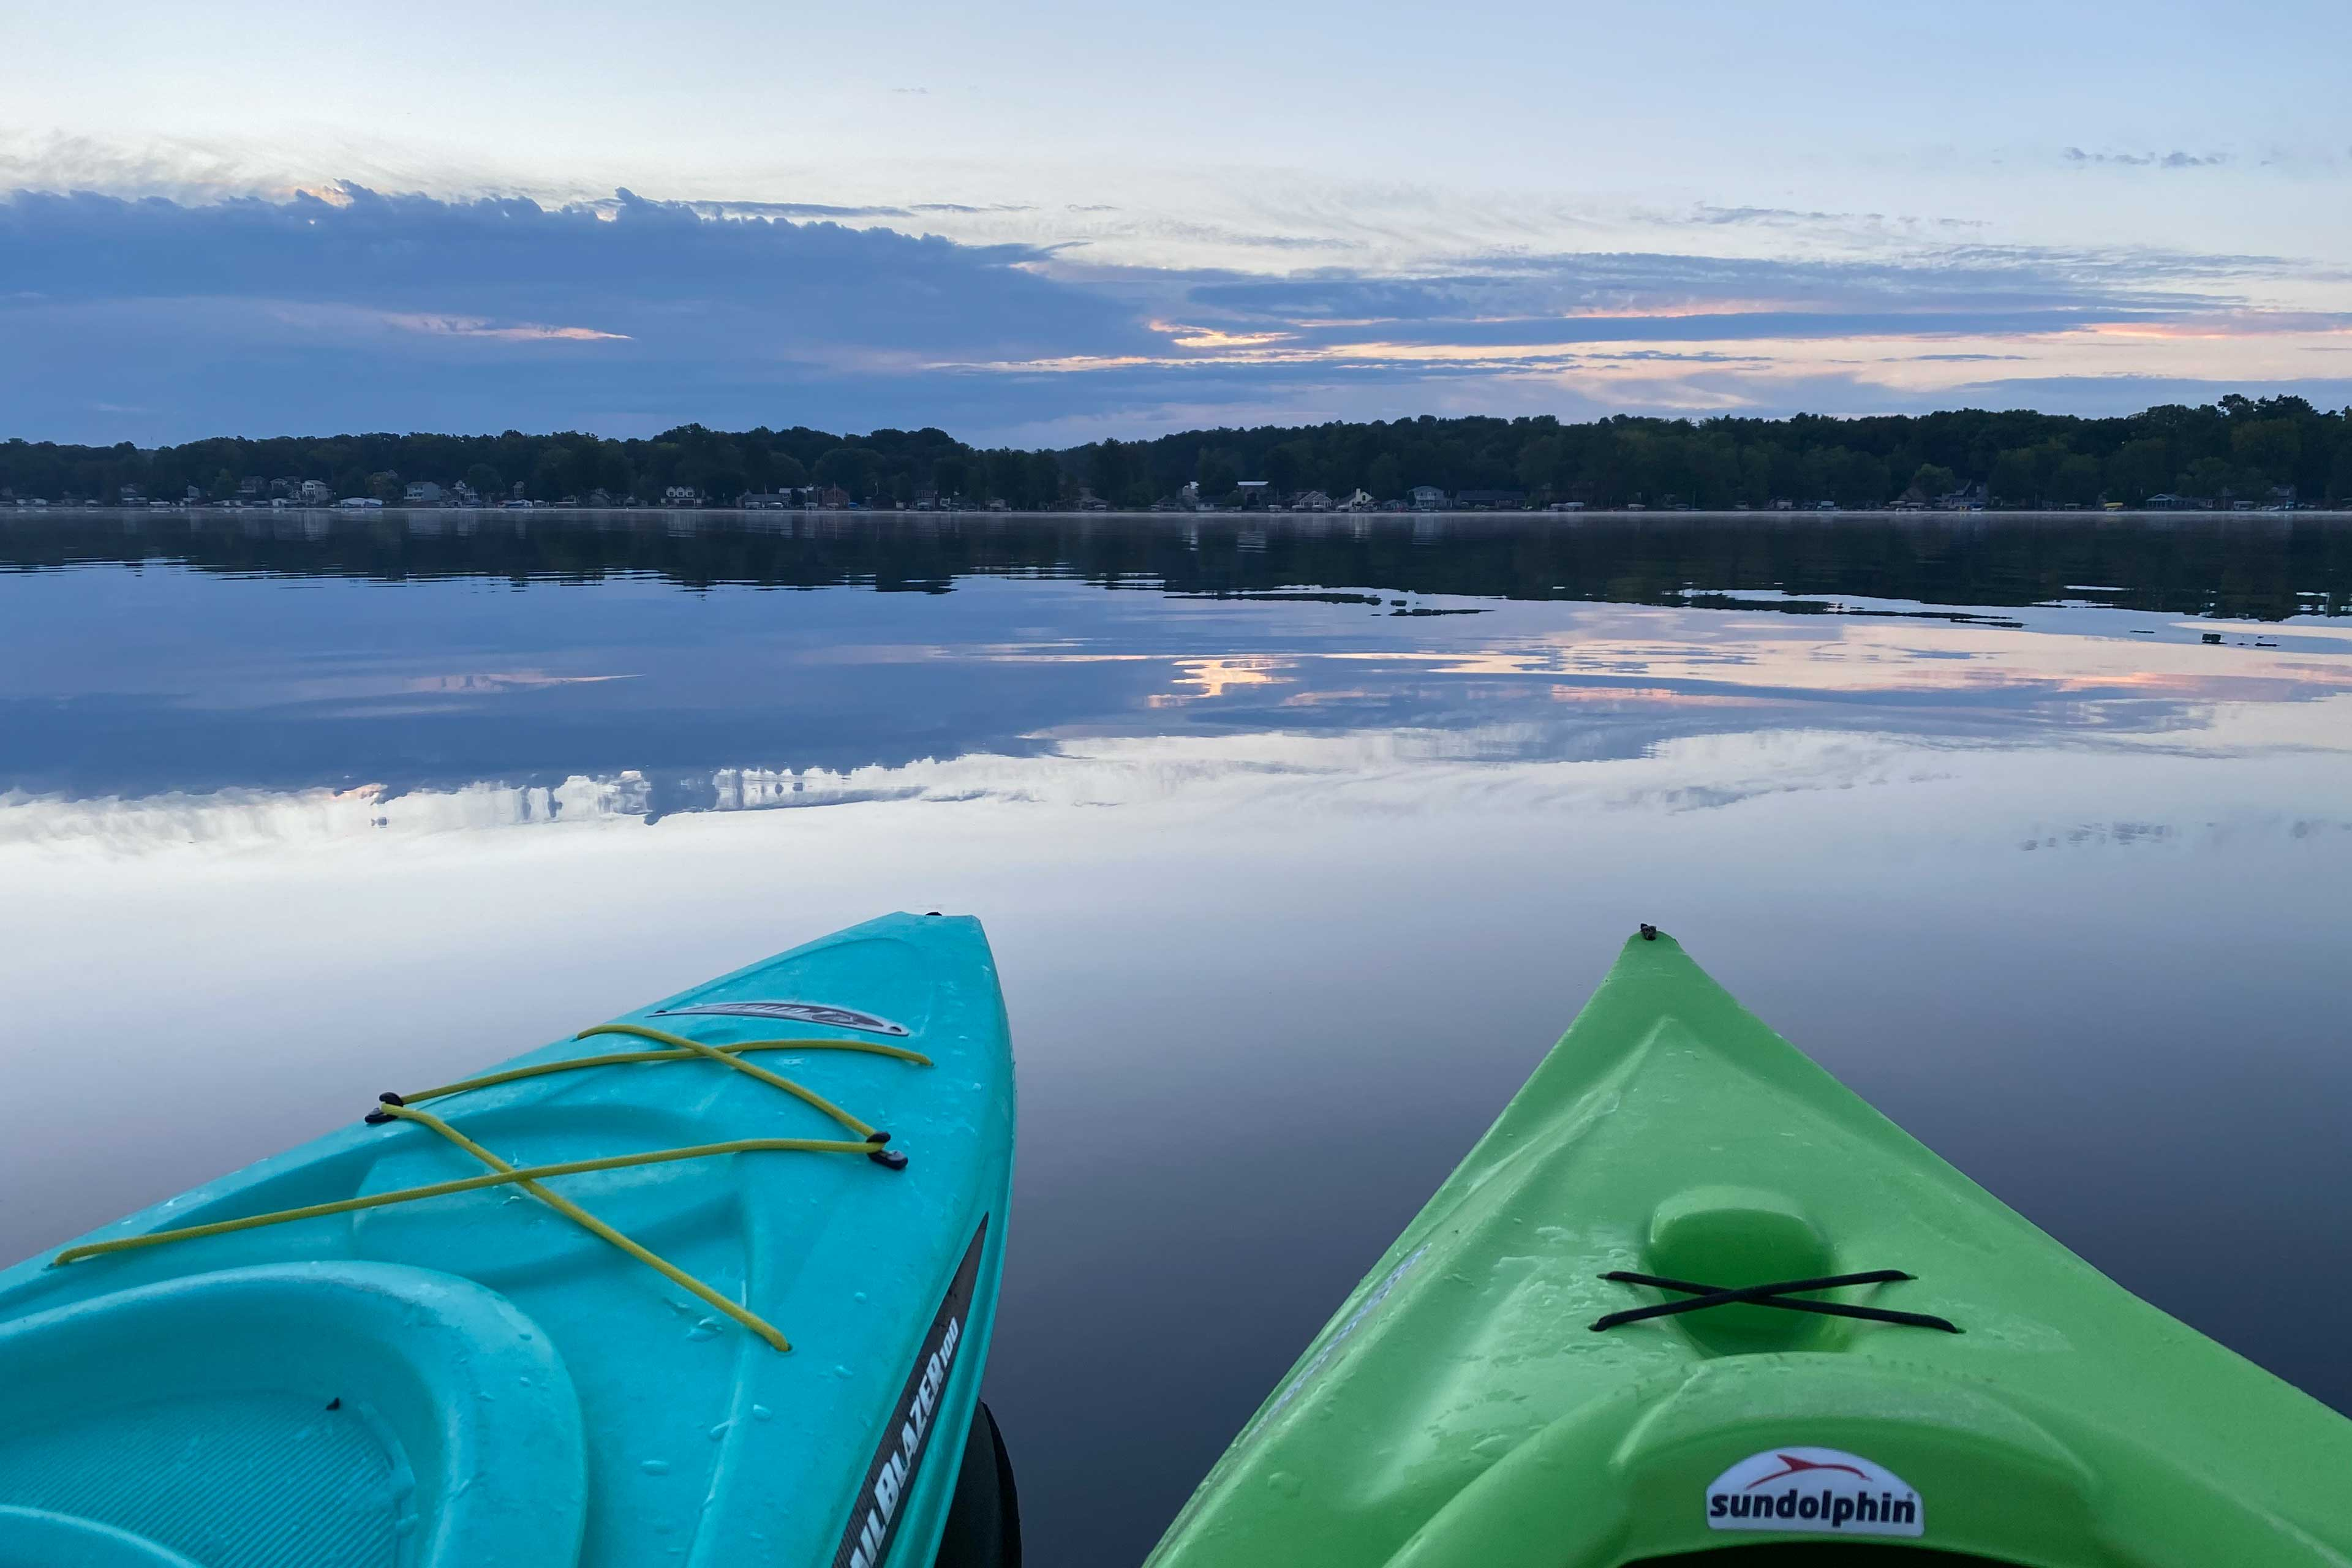 Enjoy the sunrise from the comfort of two kayaks, included with your stay!